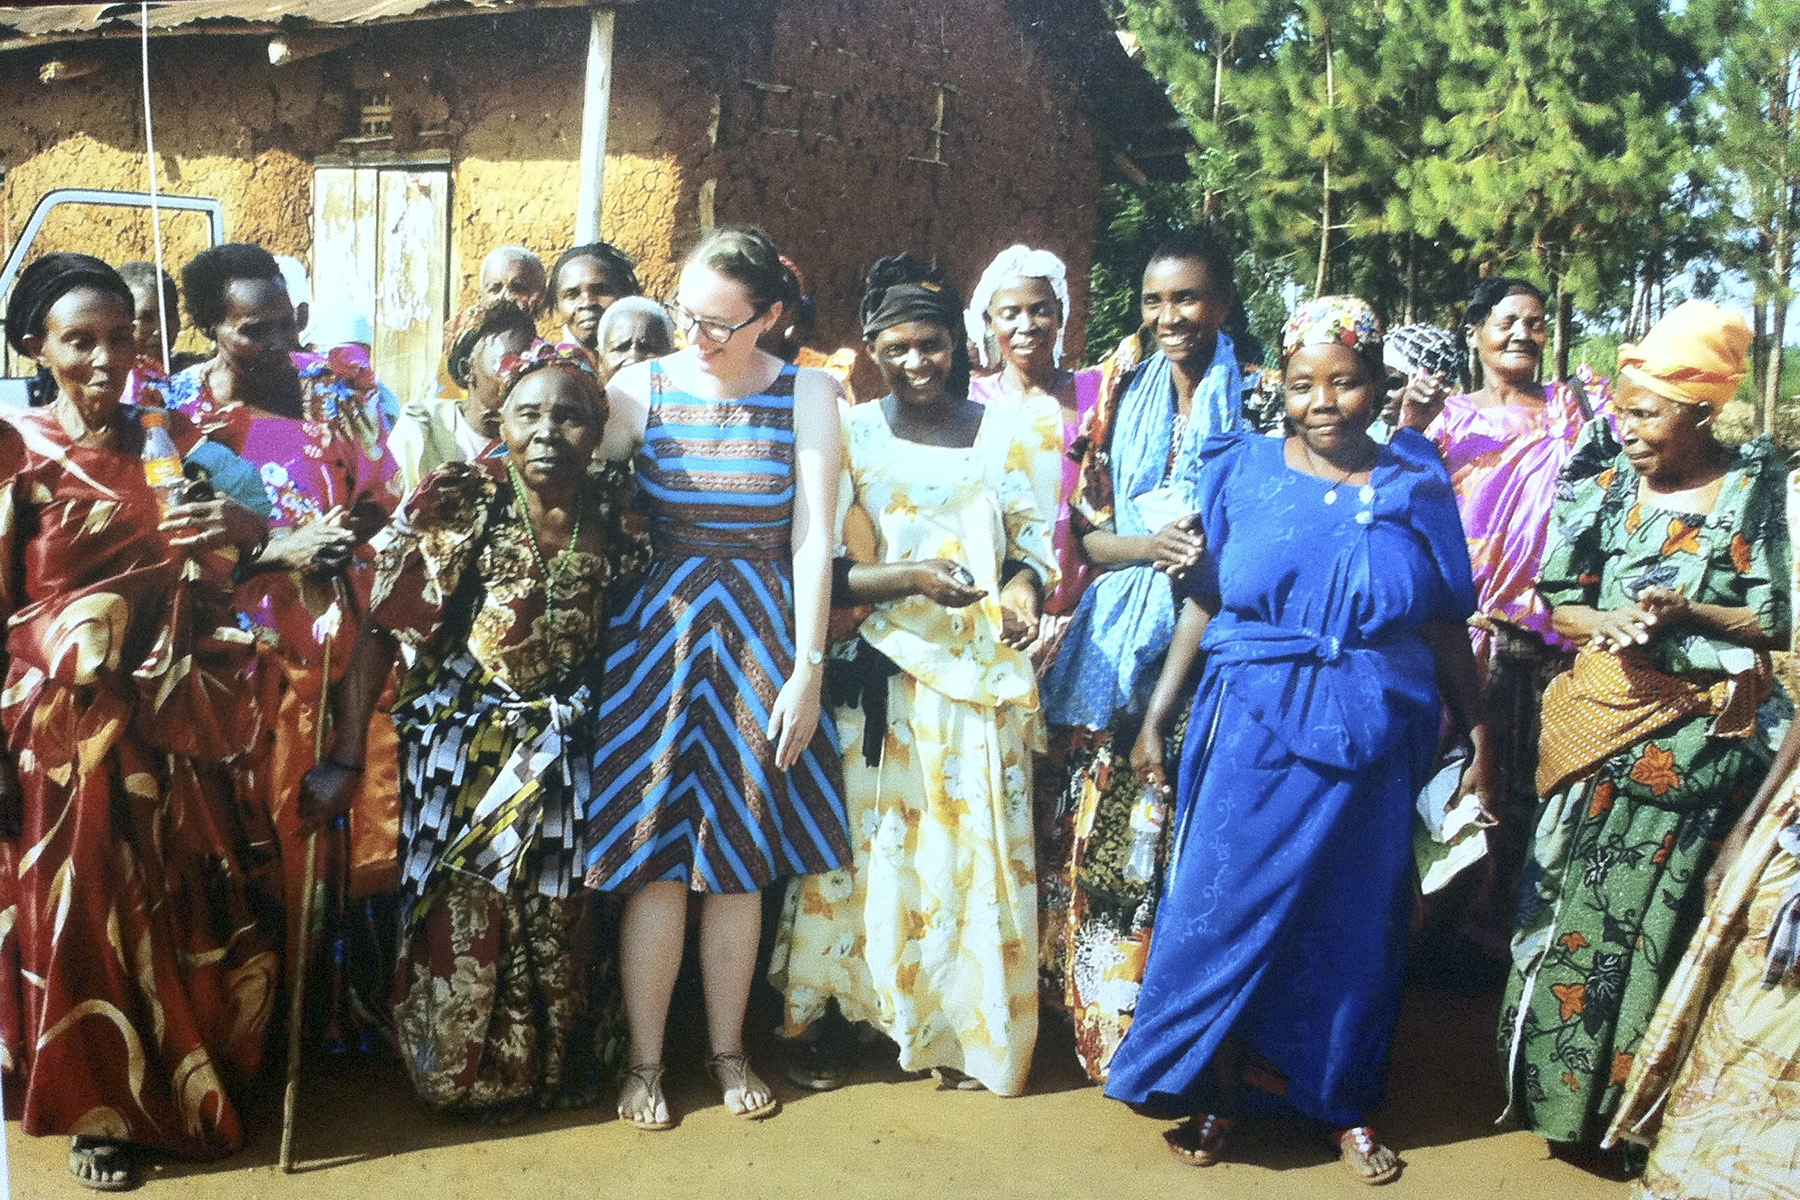 Janet Campâ 14 serves in Uganda. Here, she poses with elders in the community who she worked with through the Grandmothers' project.